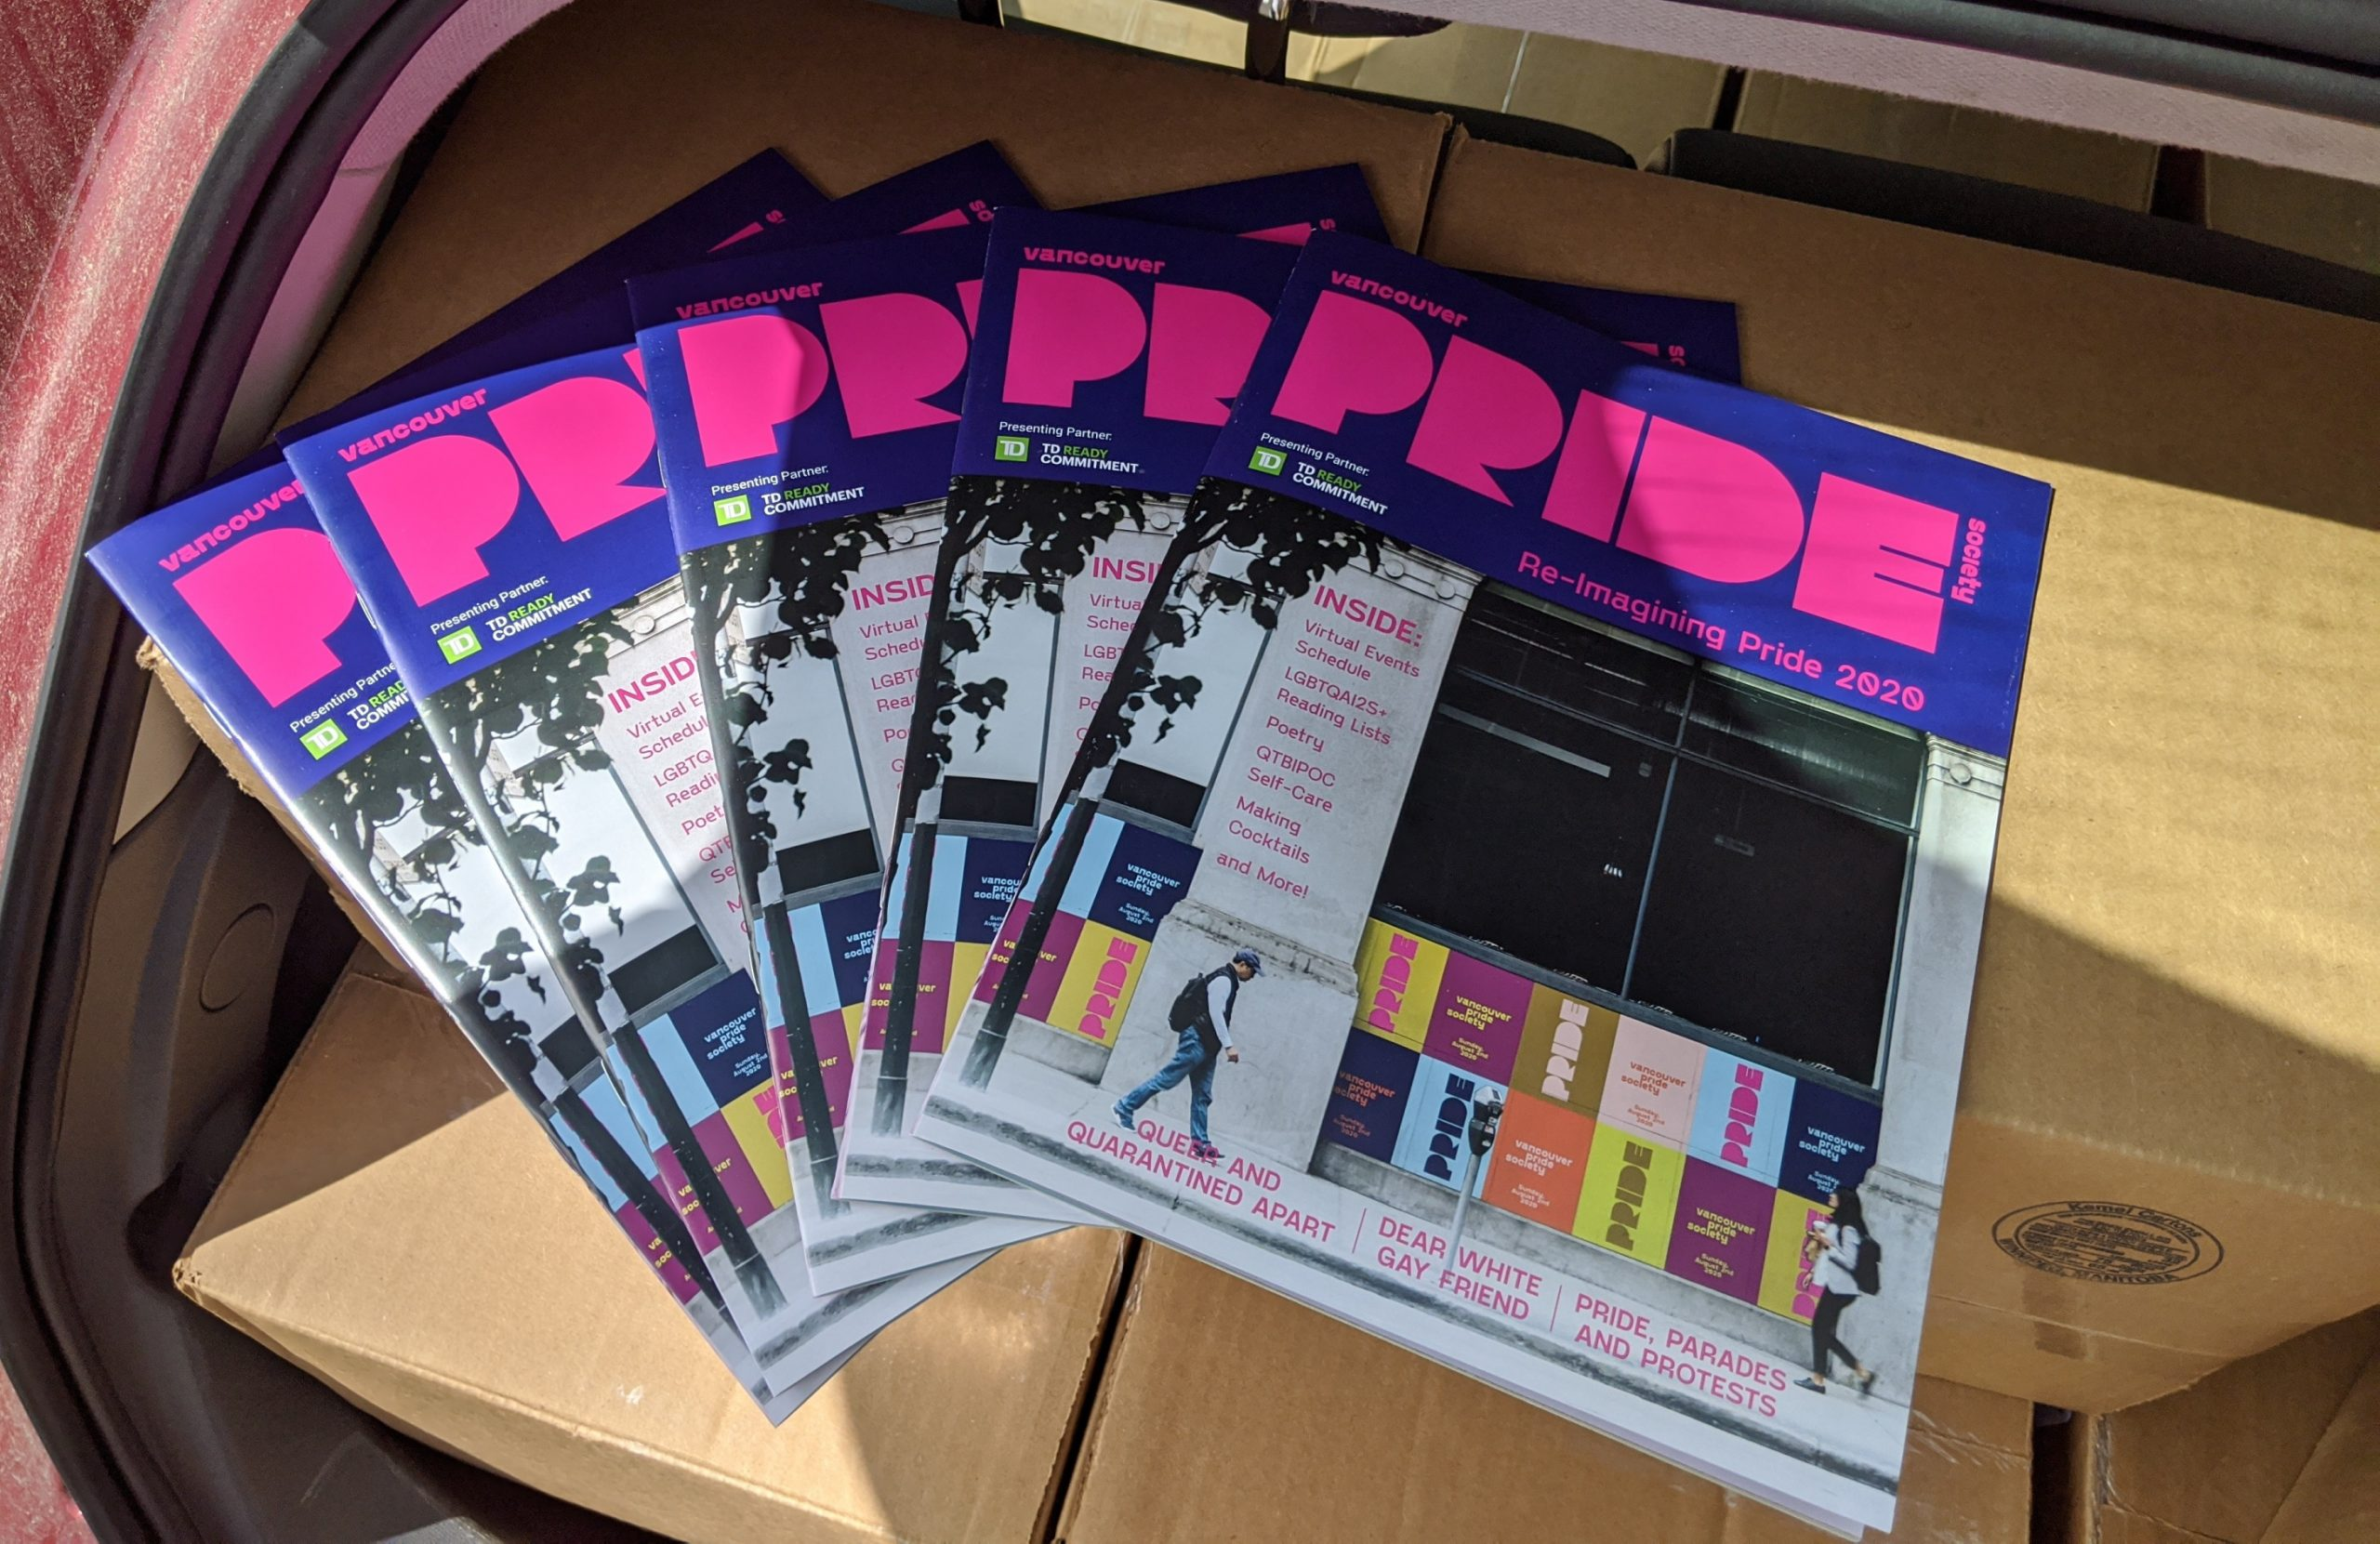 Several copies of Van Pride Magazine are fanned out on top of boxes in the back of a red vehicle.